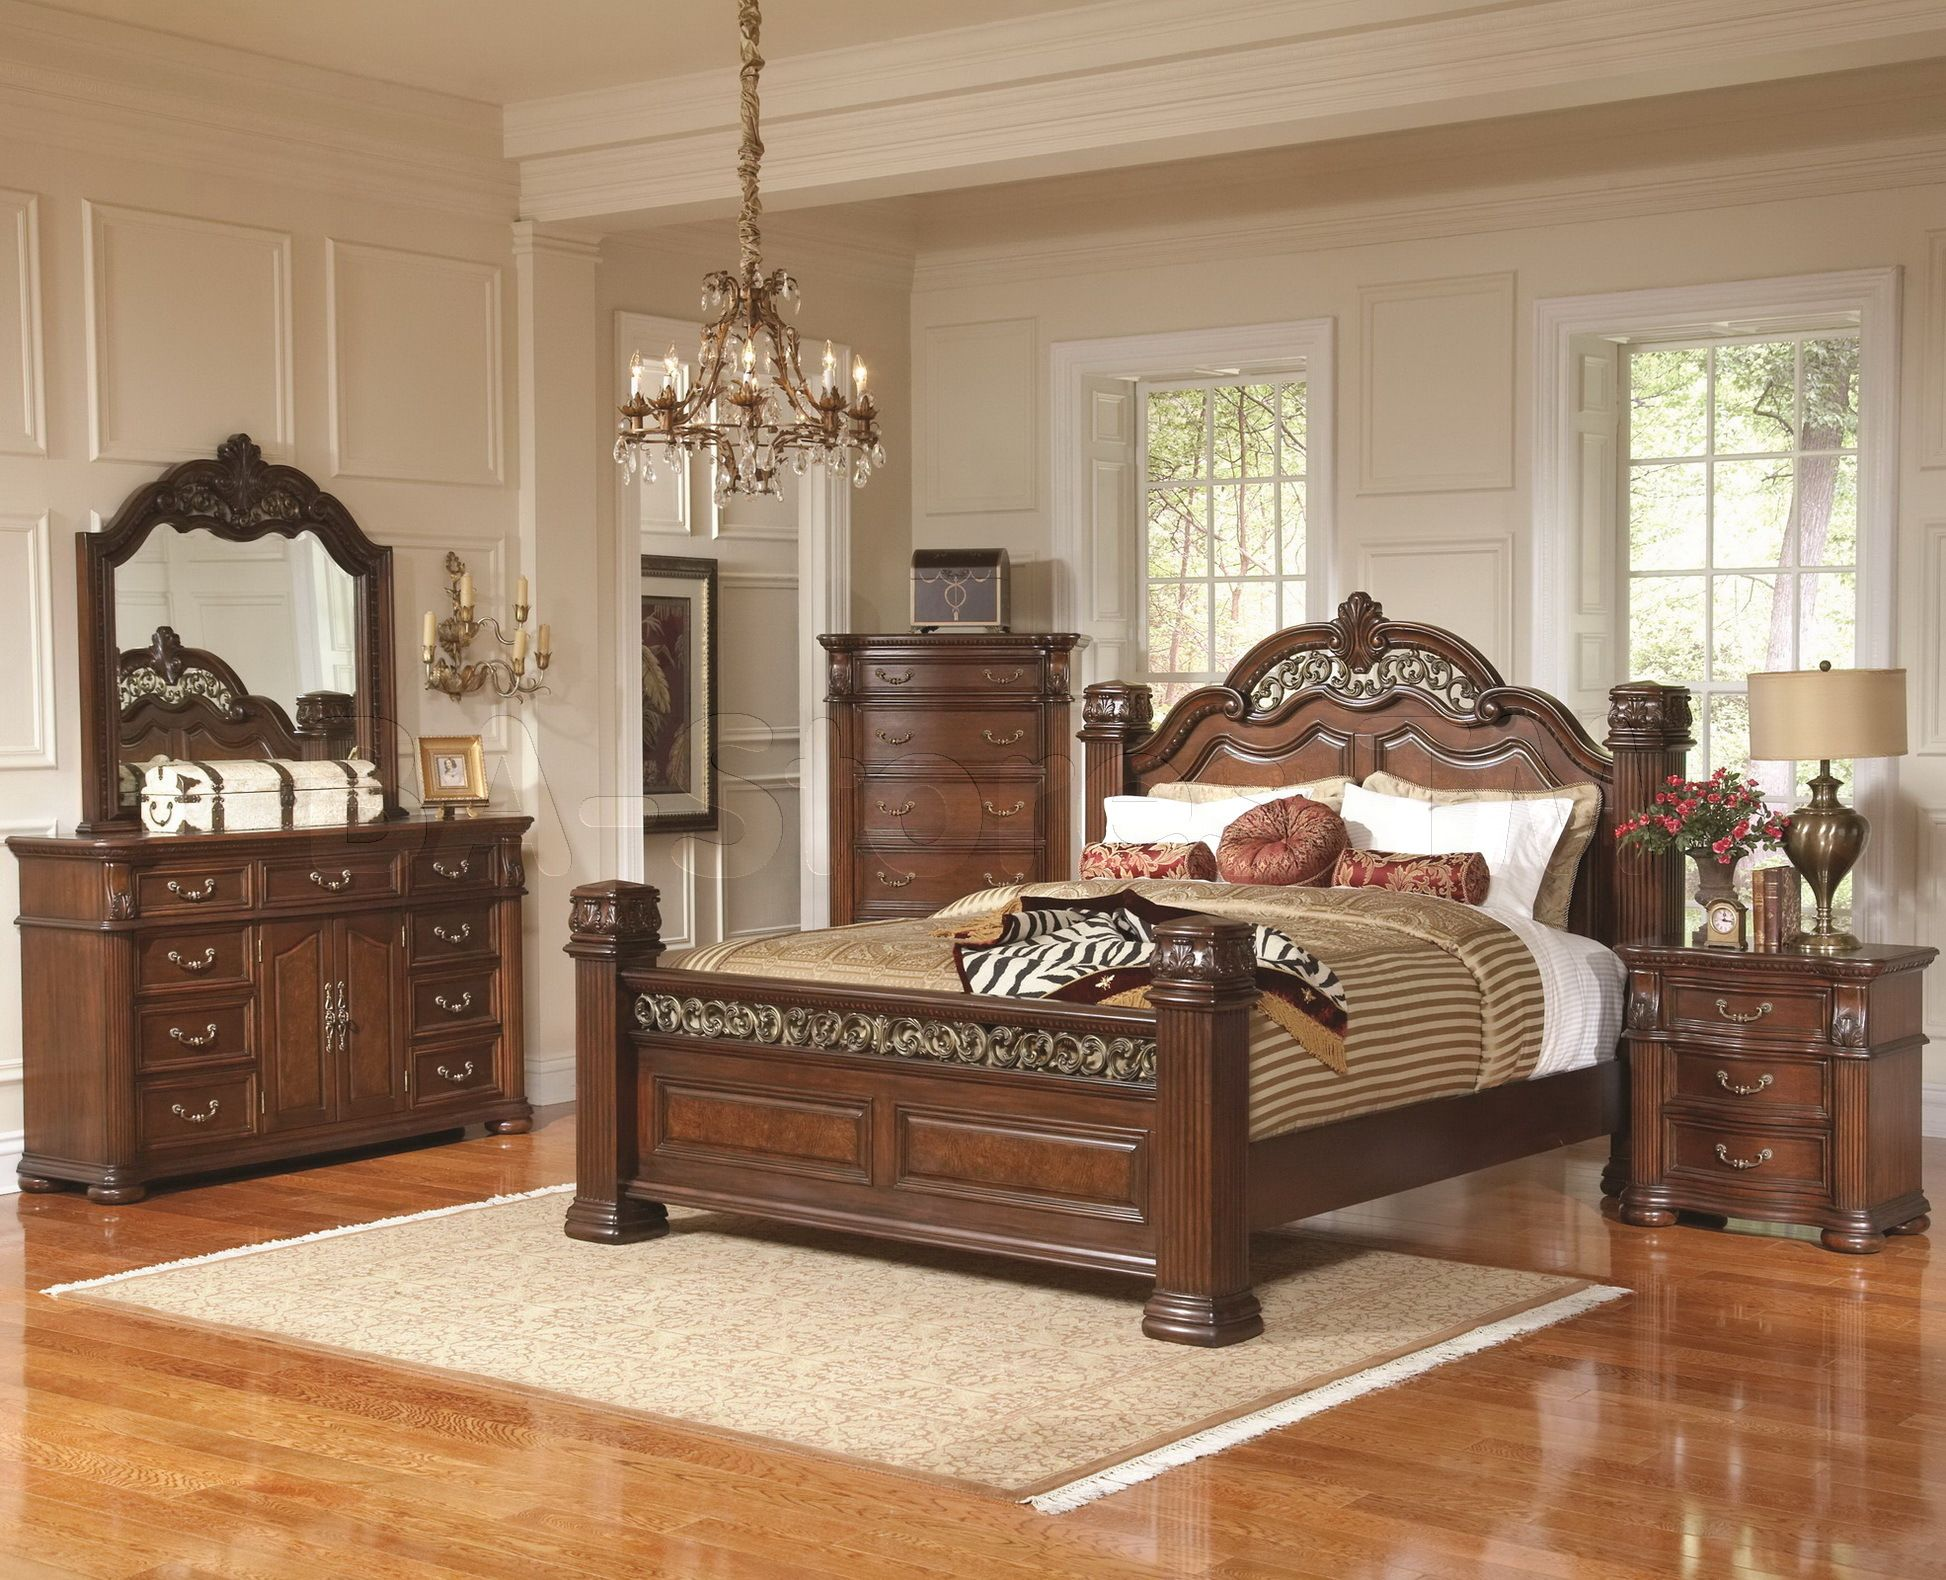 Luxurious Wooden Master Bed And Vanities Bedroom Design Also Smart Bedroom Rugs On Glossy Woo Master Bedroom Furniture Bedroom Furniture Sets Wooden Bed Design